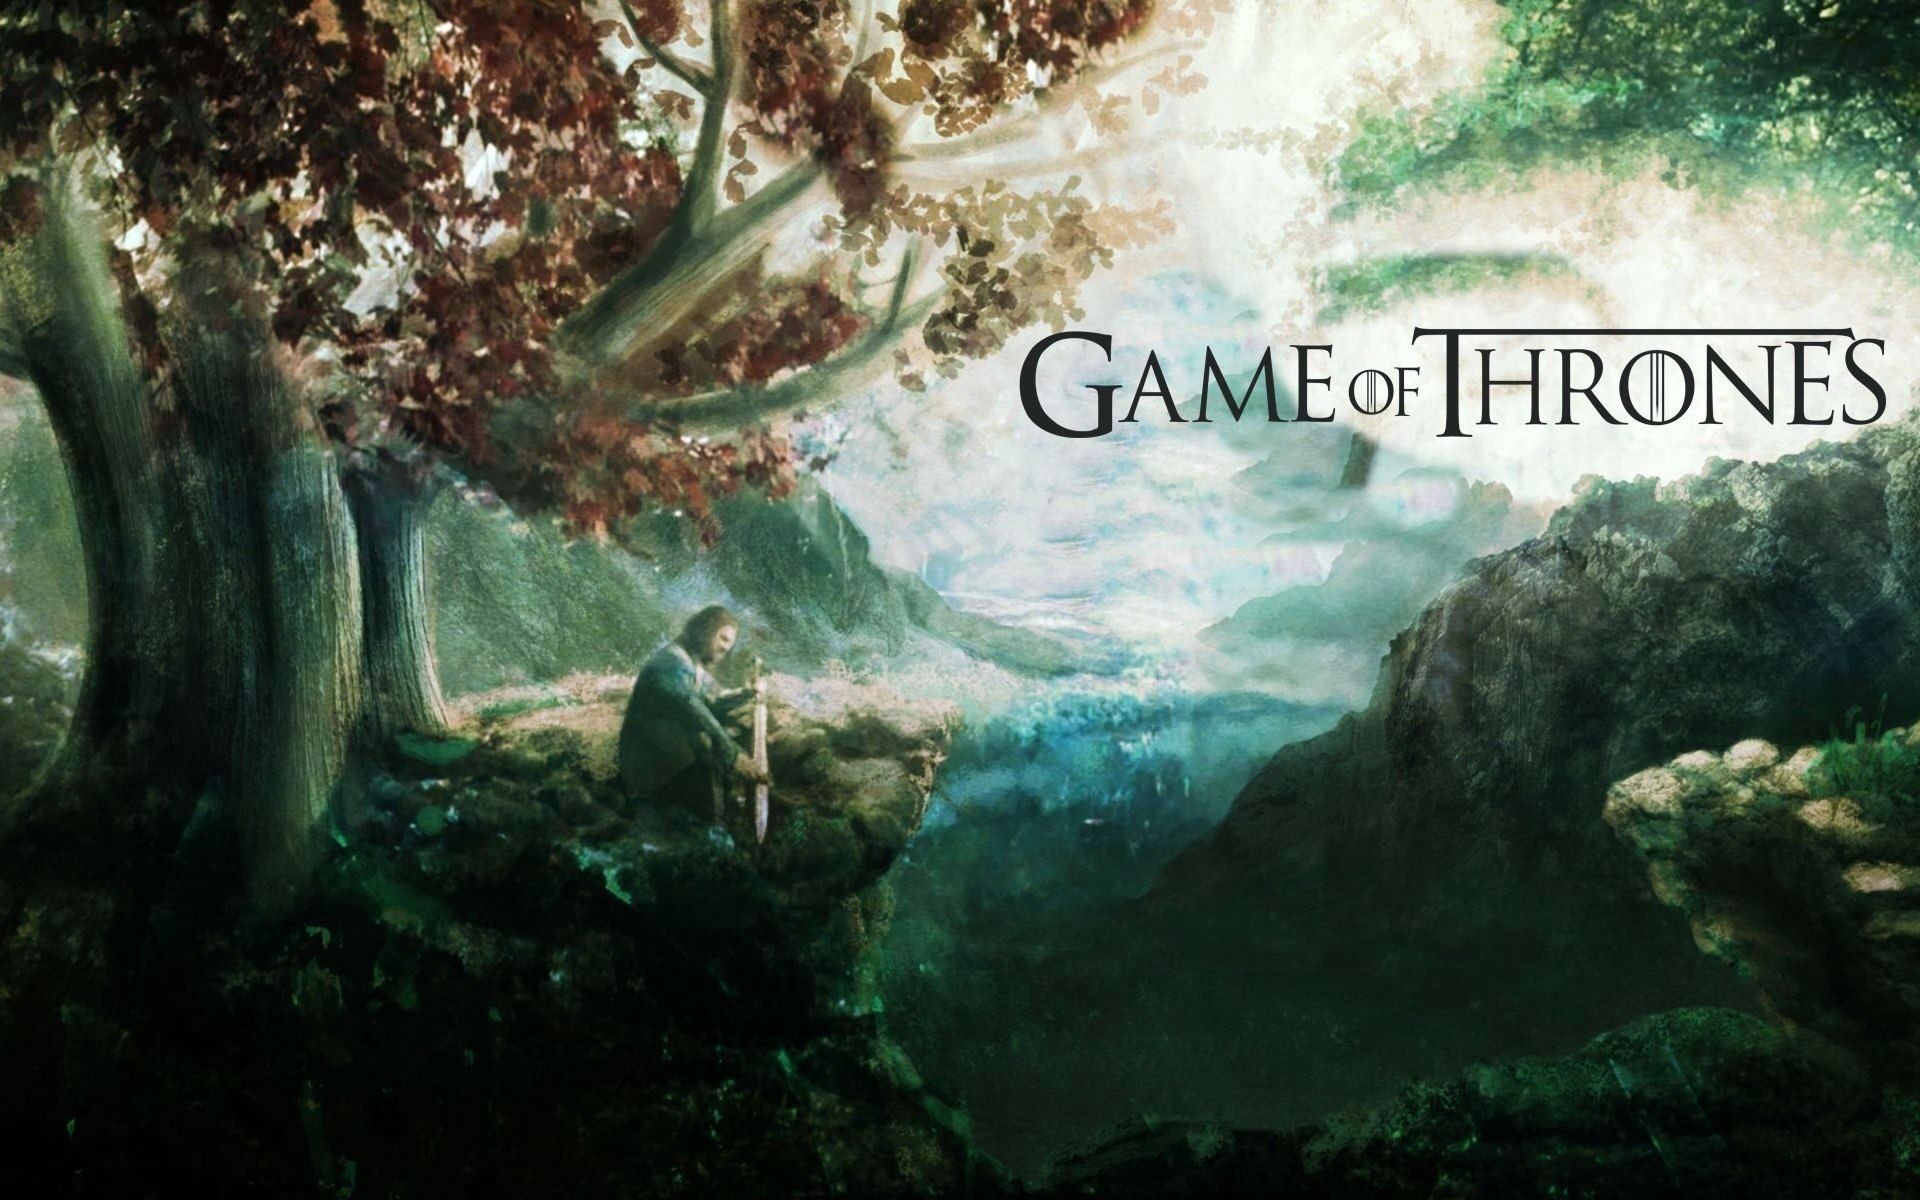 Game Of Thrones Full Hd 1080p 1920p Wallpaper - Game Of Thrones Background Pc - HD Wallpaper